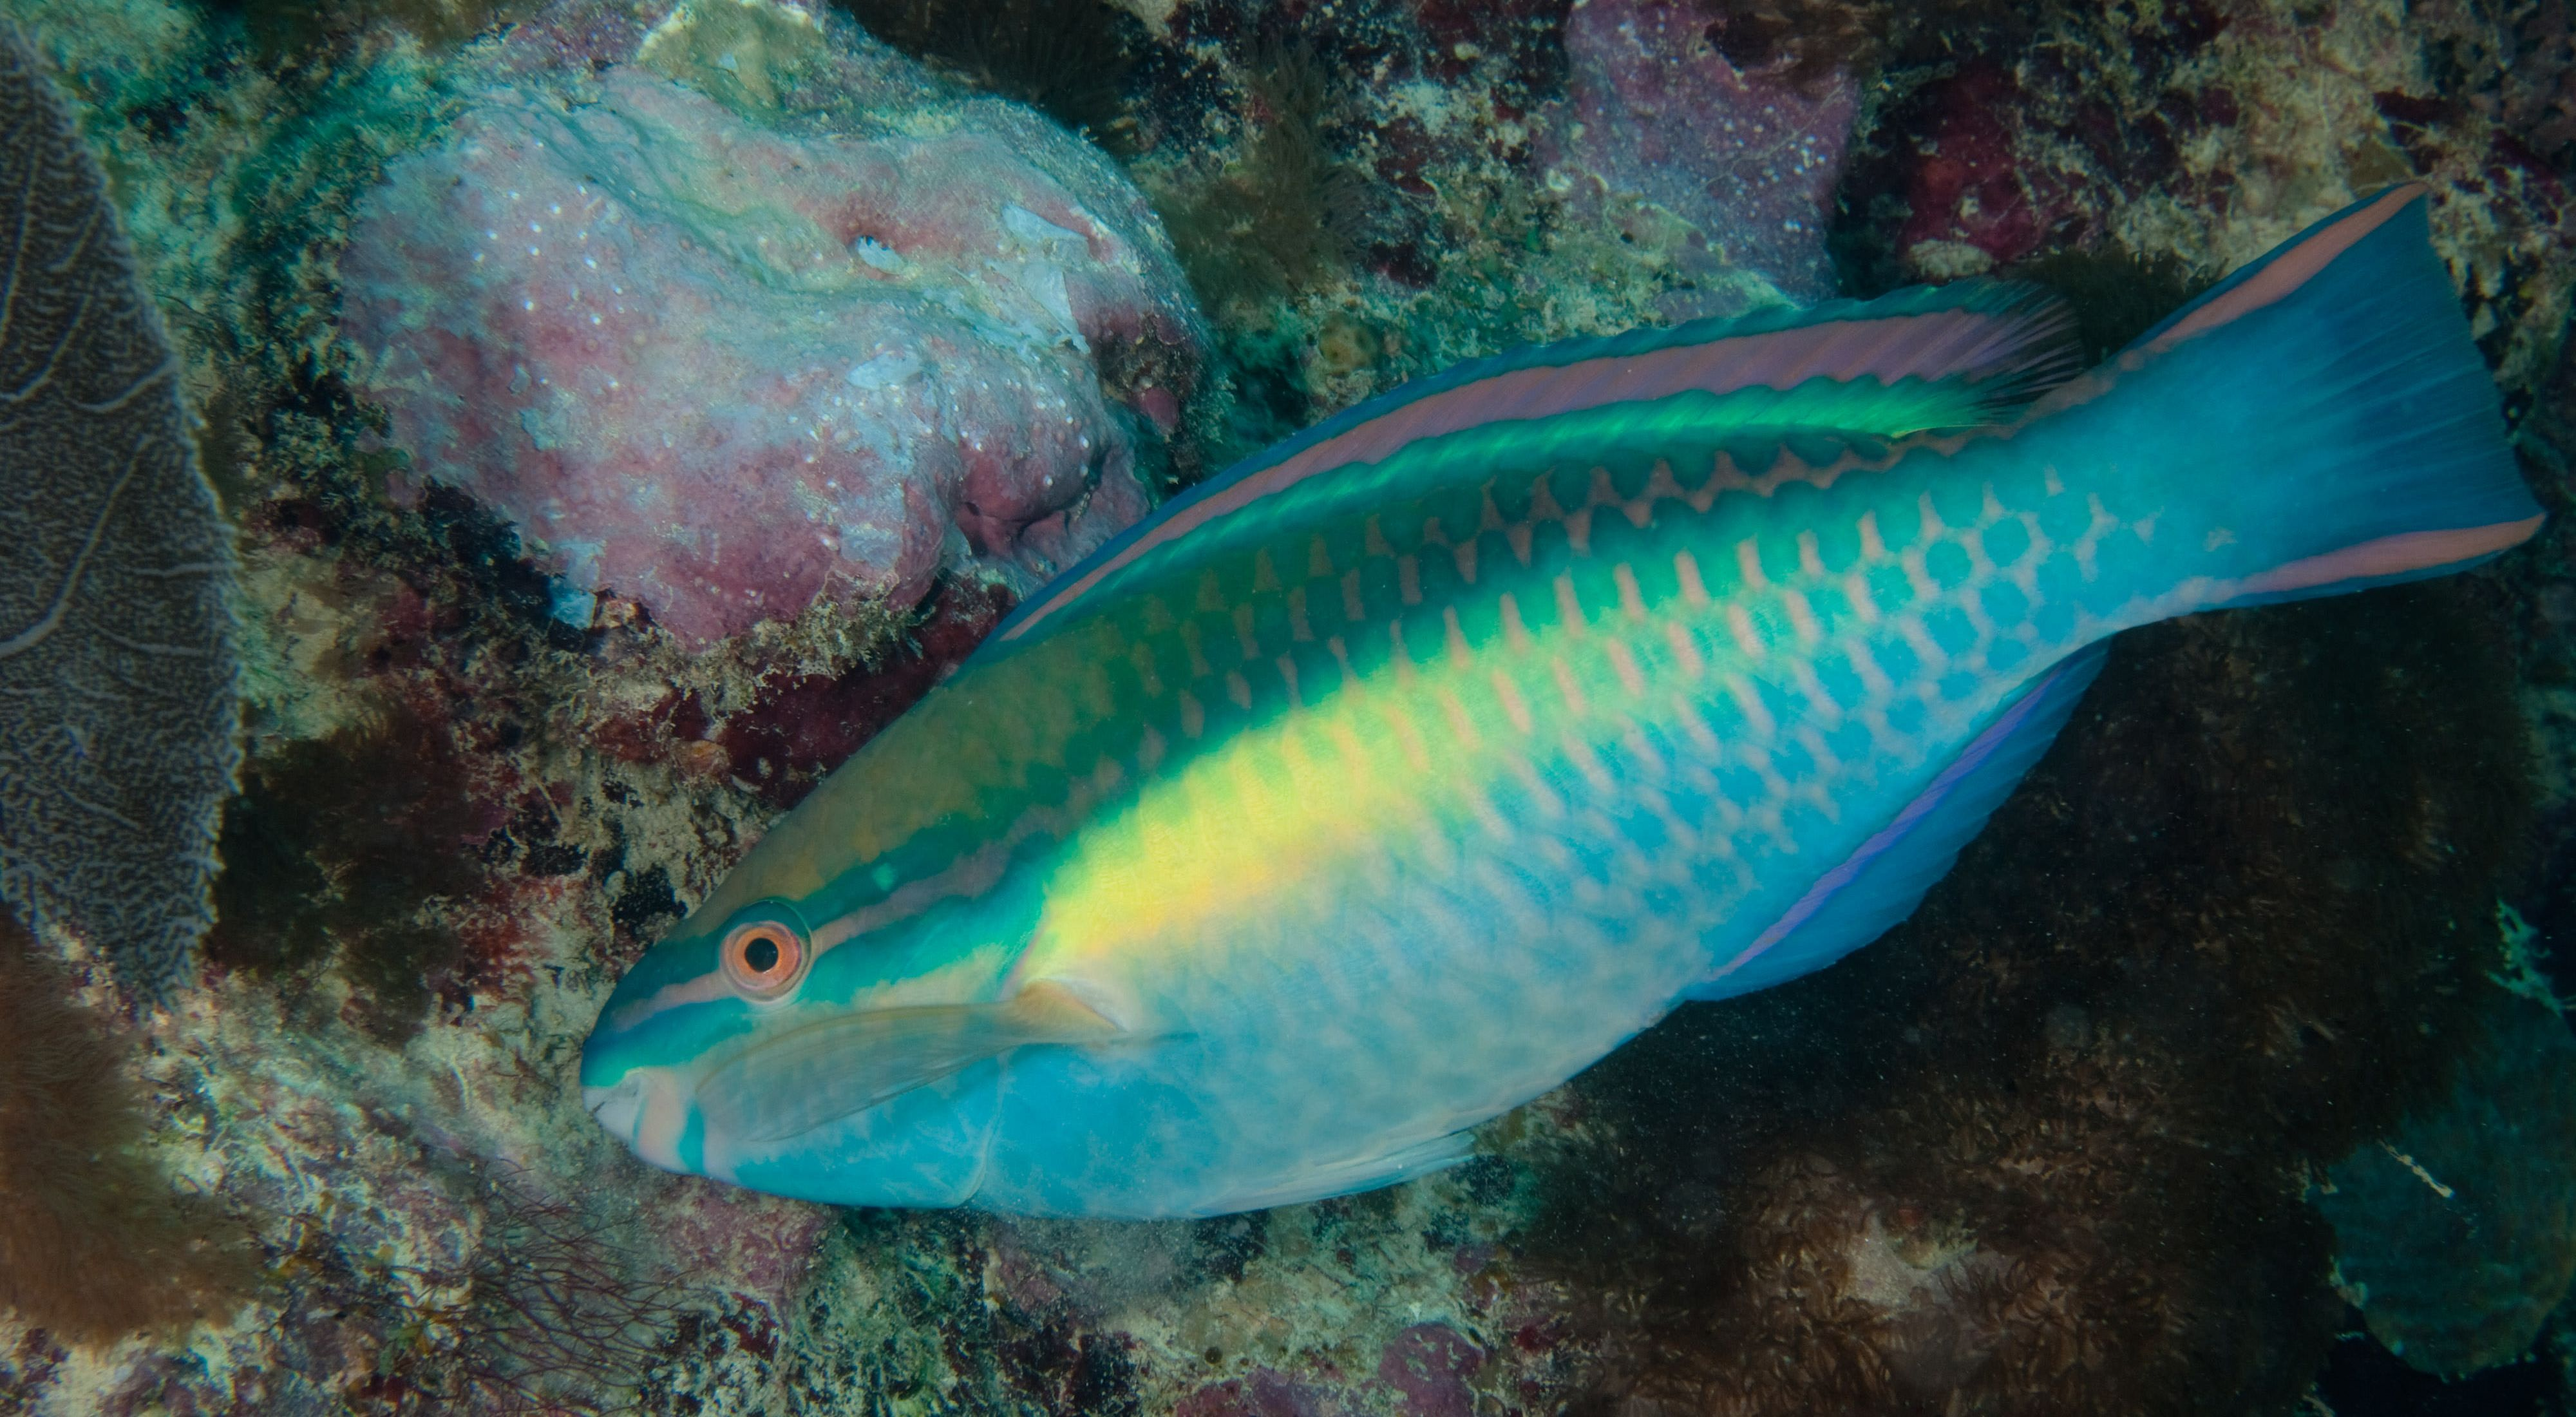 side view of a green and yellow tropical fish